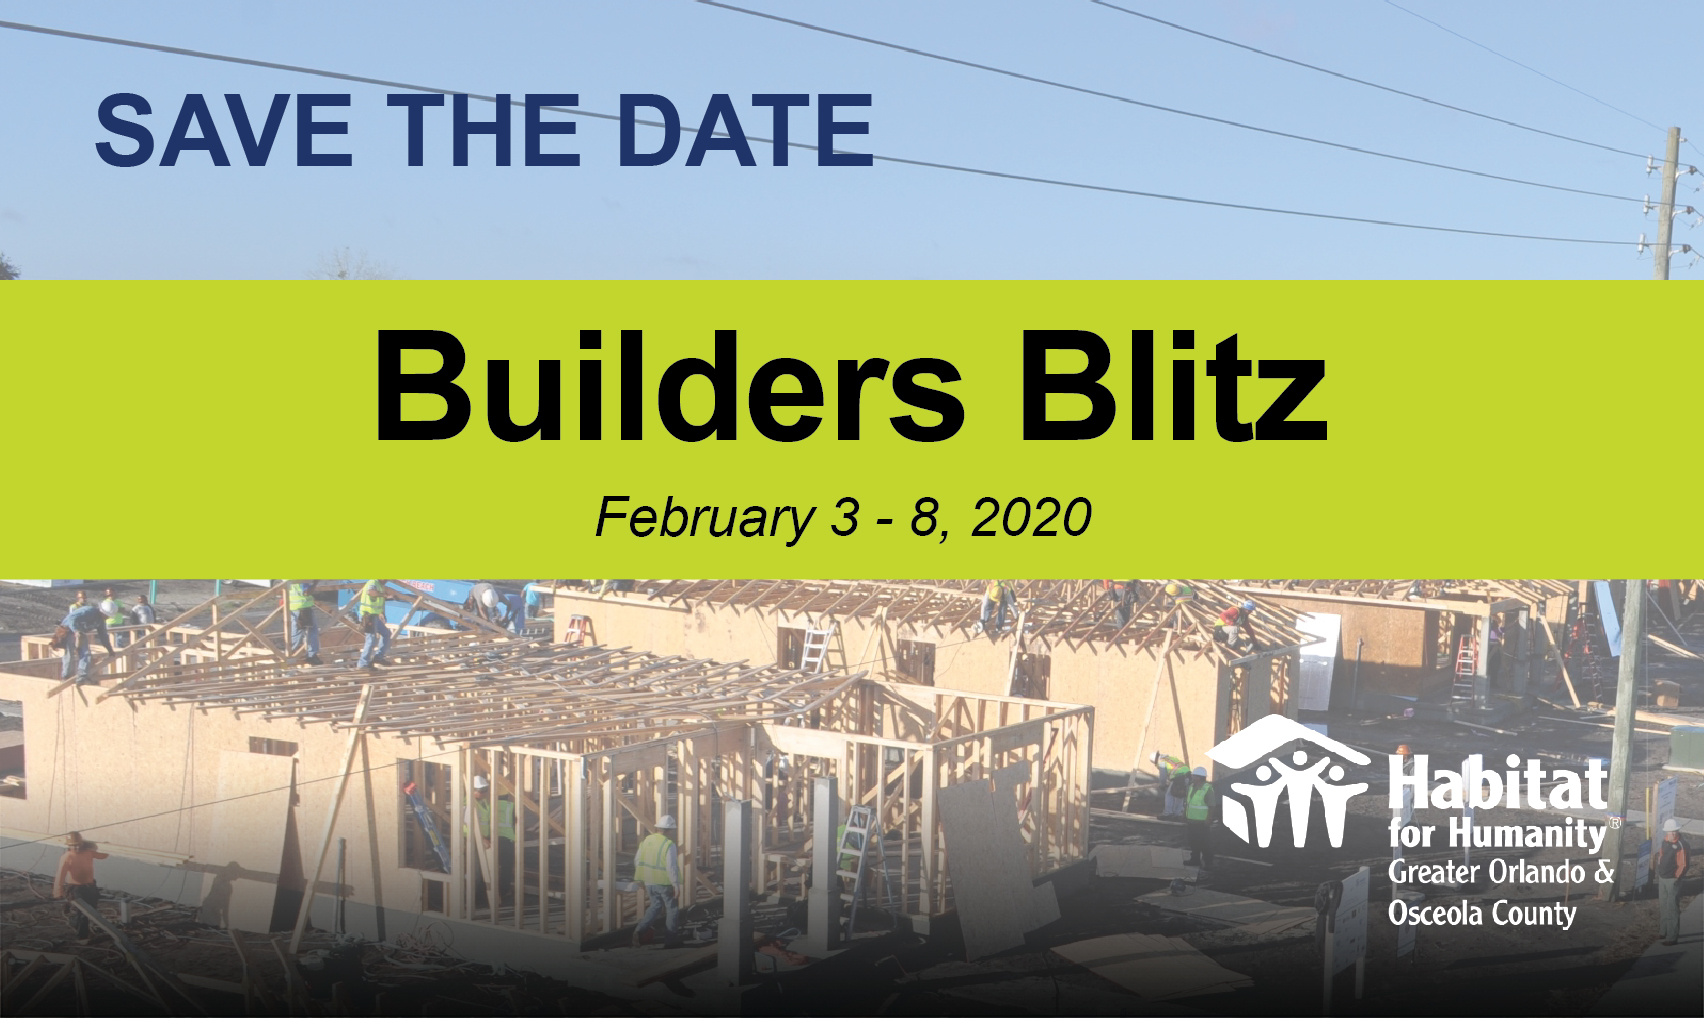 """Aerial of houses under construction during Builders Blitz with text """"Save the Date: Builders Blitz February 3-8, 2020"""""""